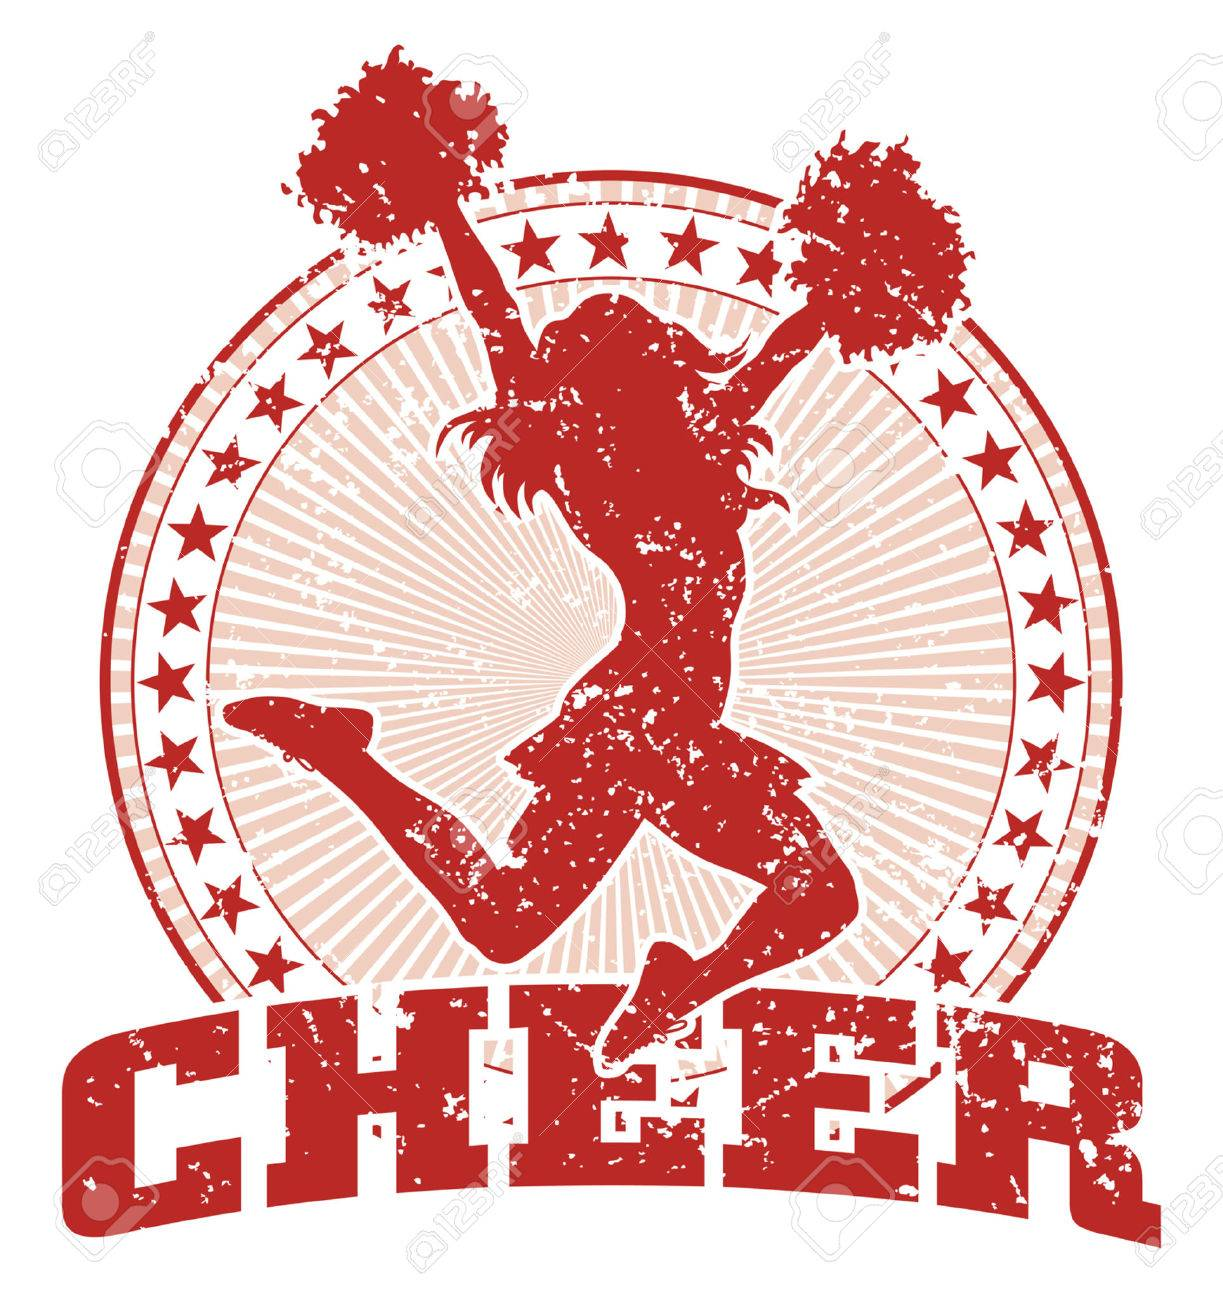 hight resolution of cheer design illustration of a cheer design in a vintage style with a cheerleader silhouette